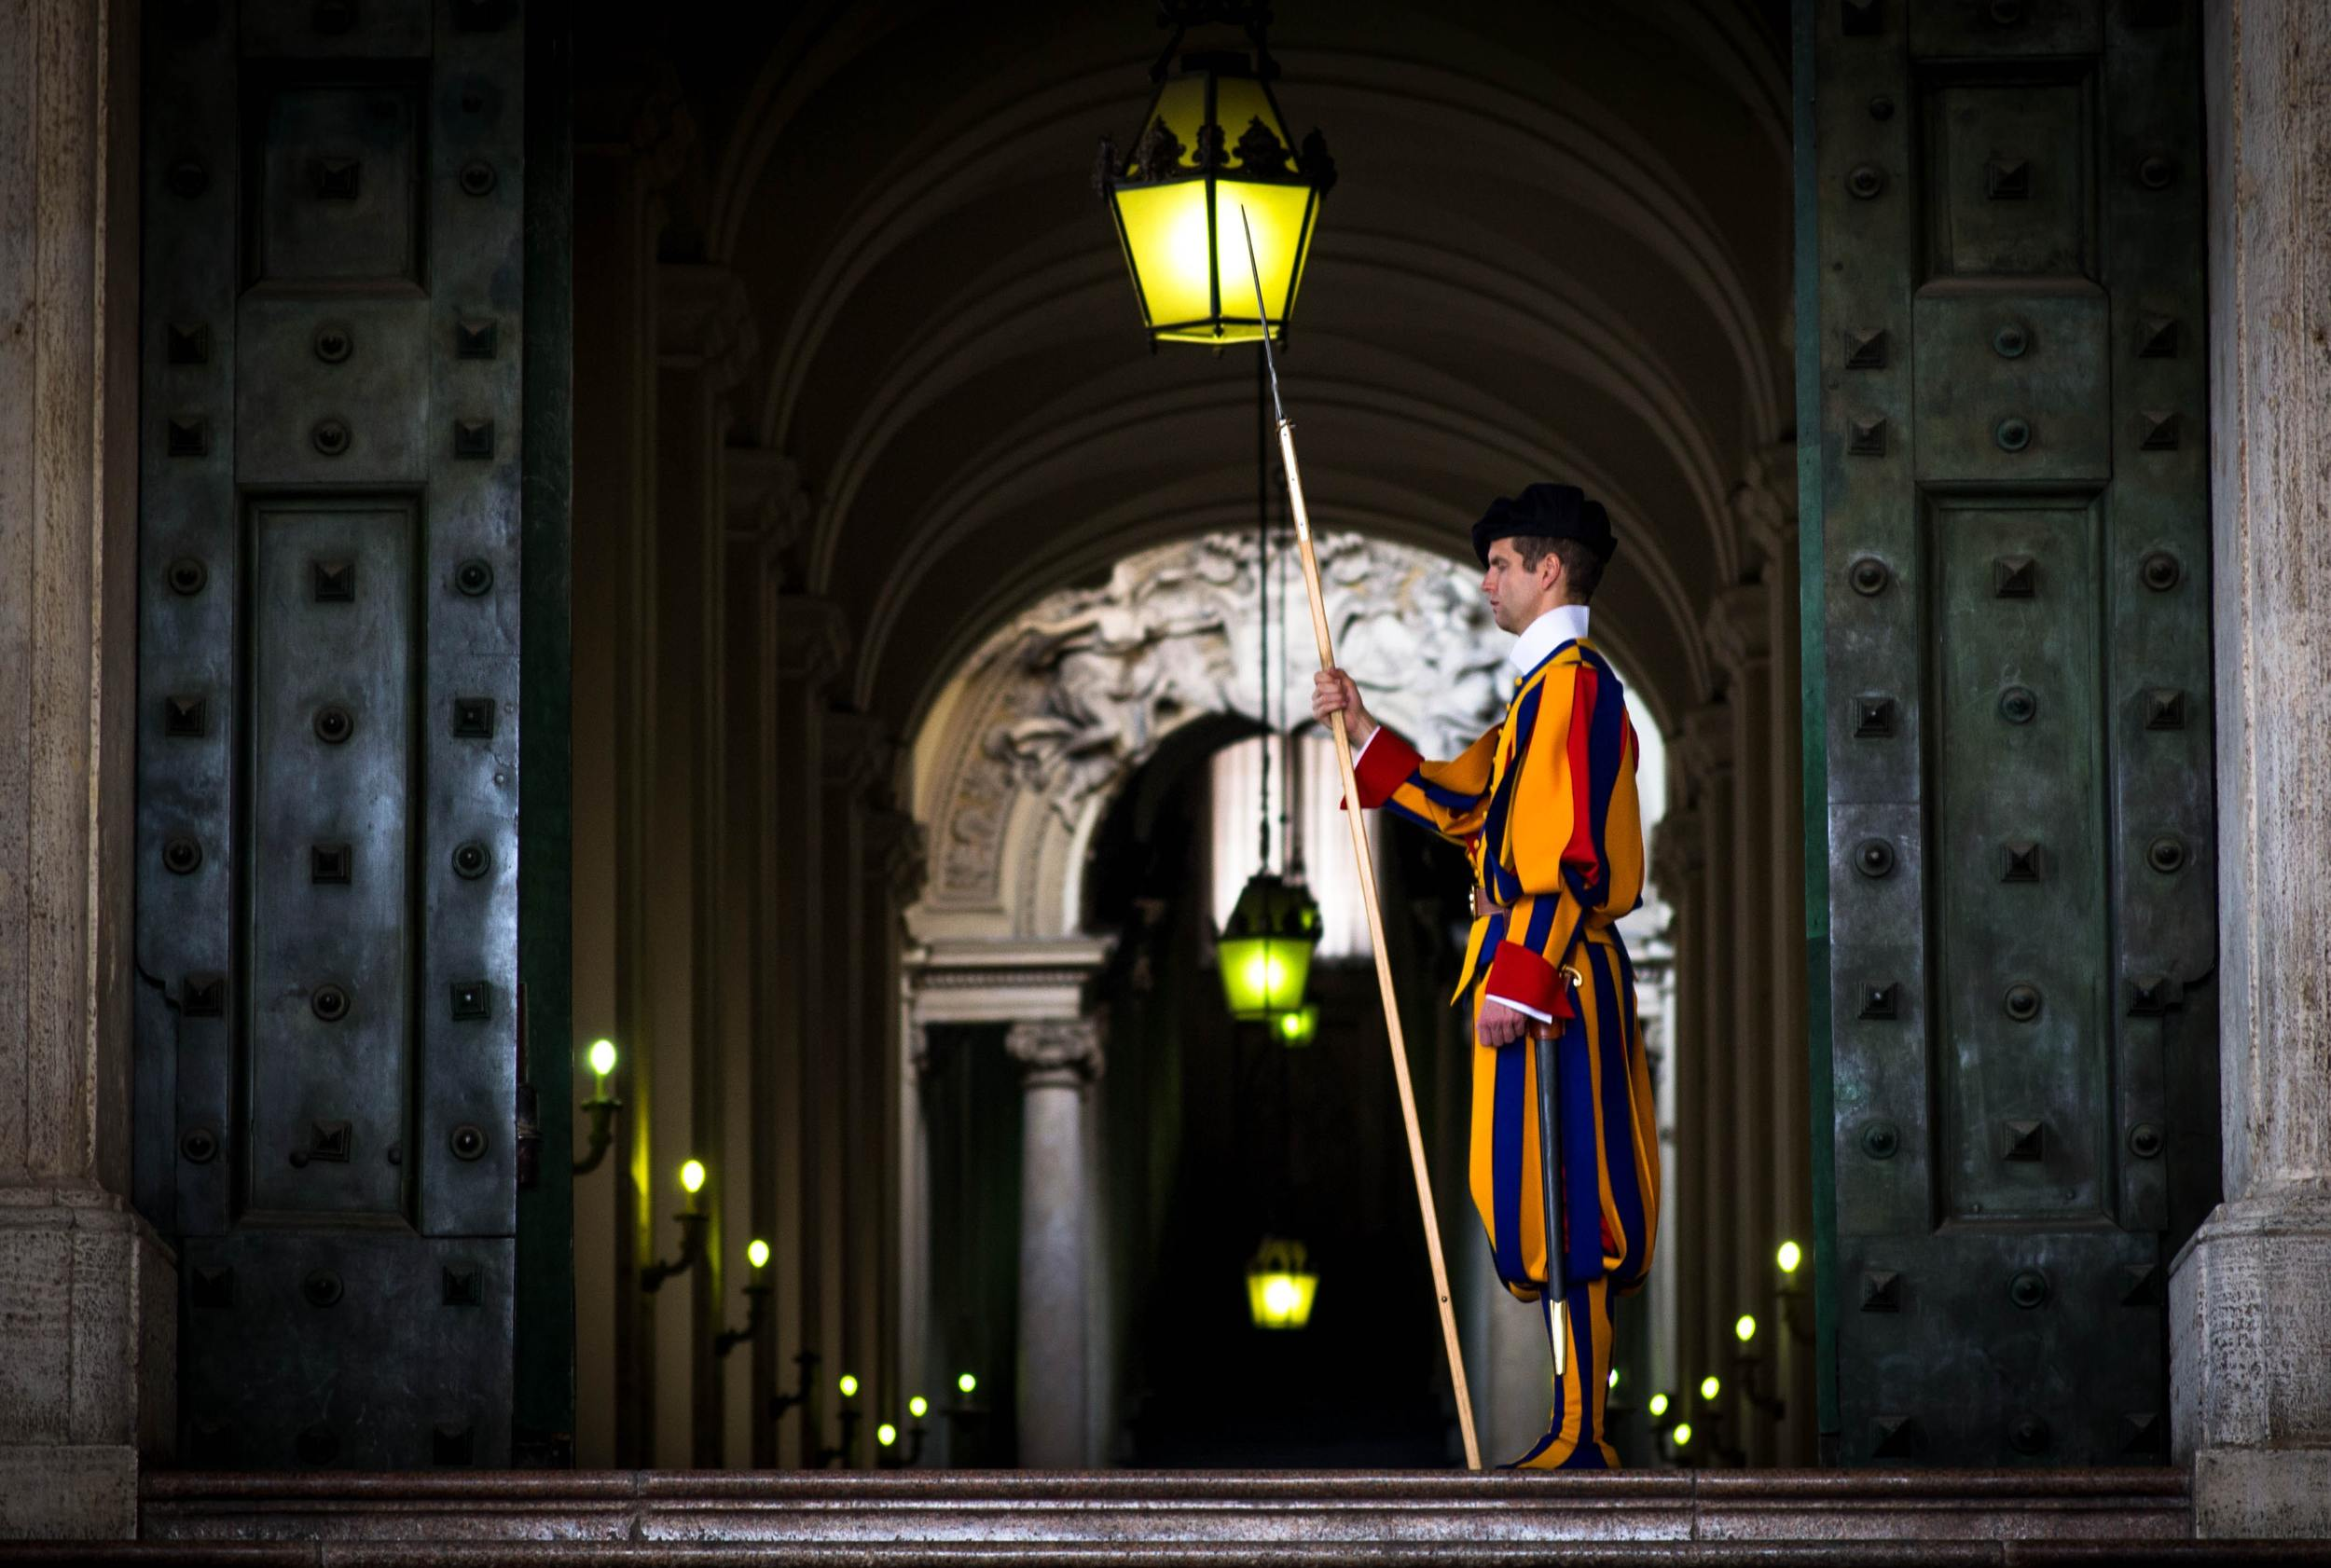 basilica-cathedral-dome-swiss guard